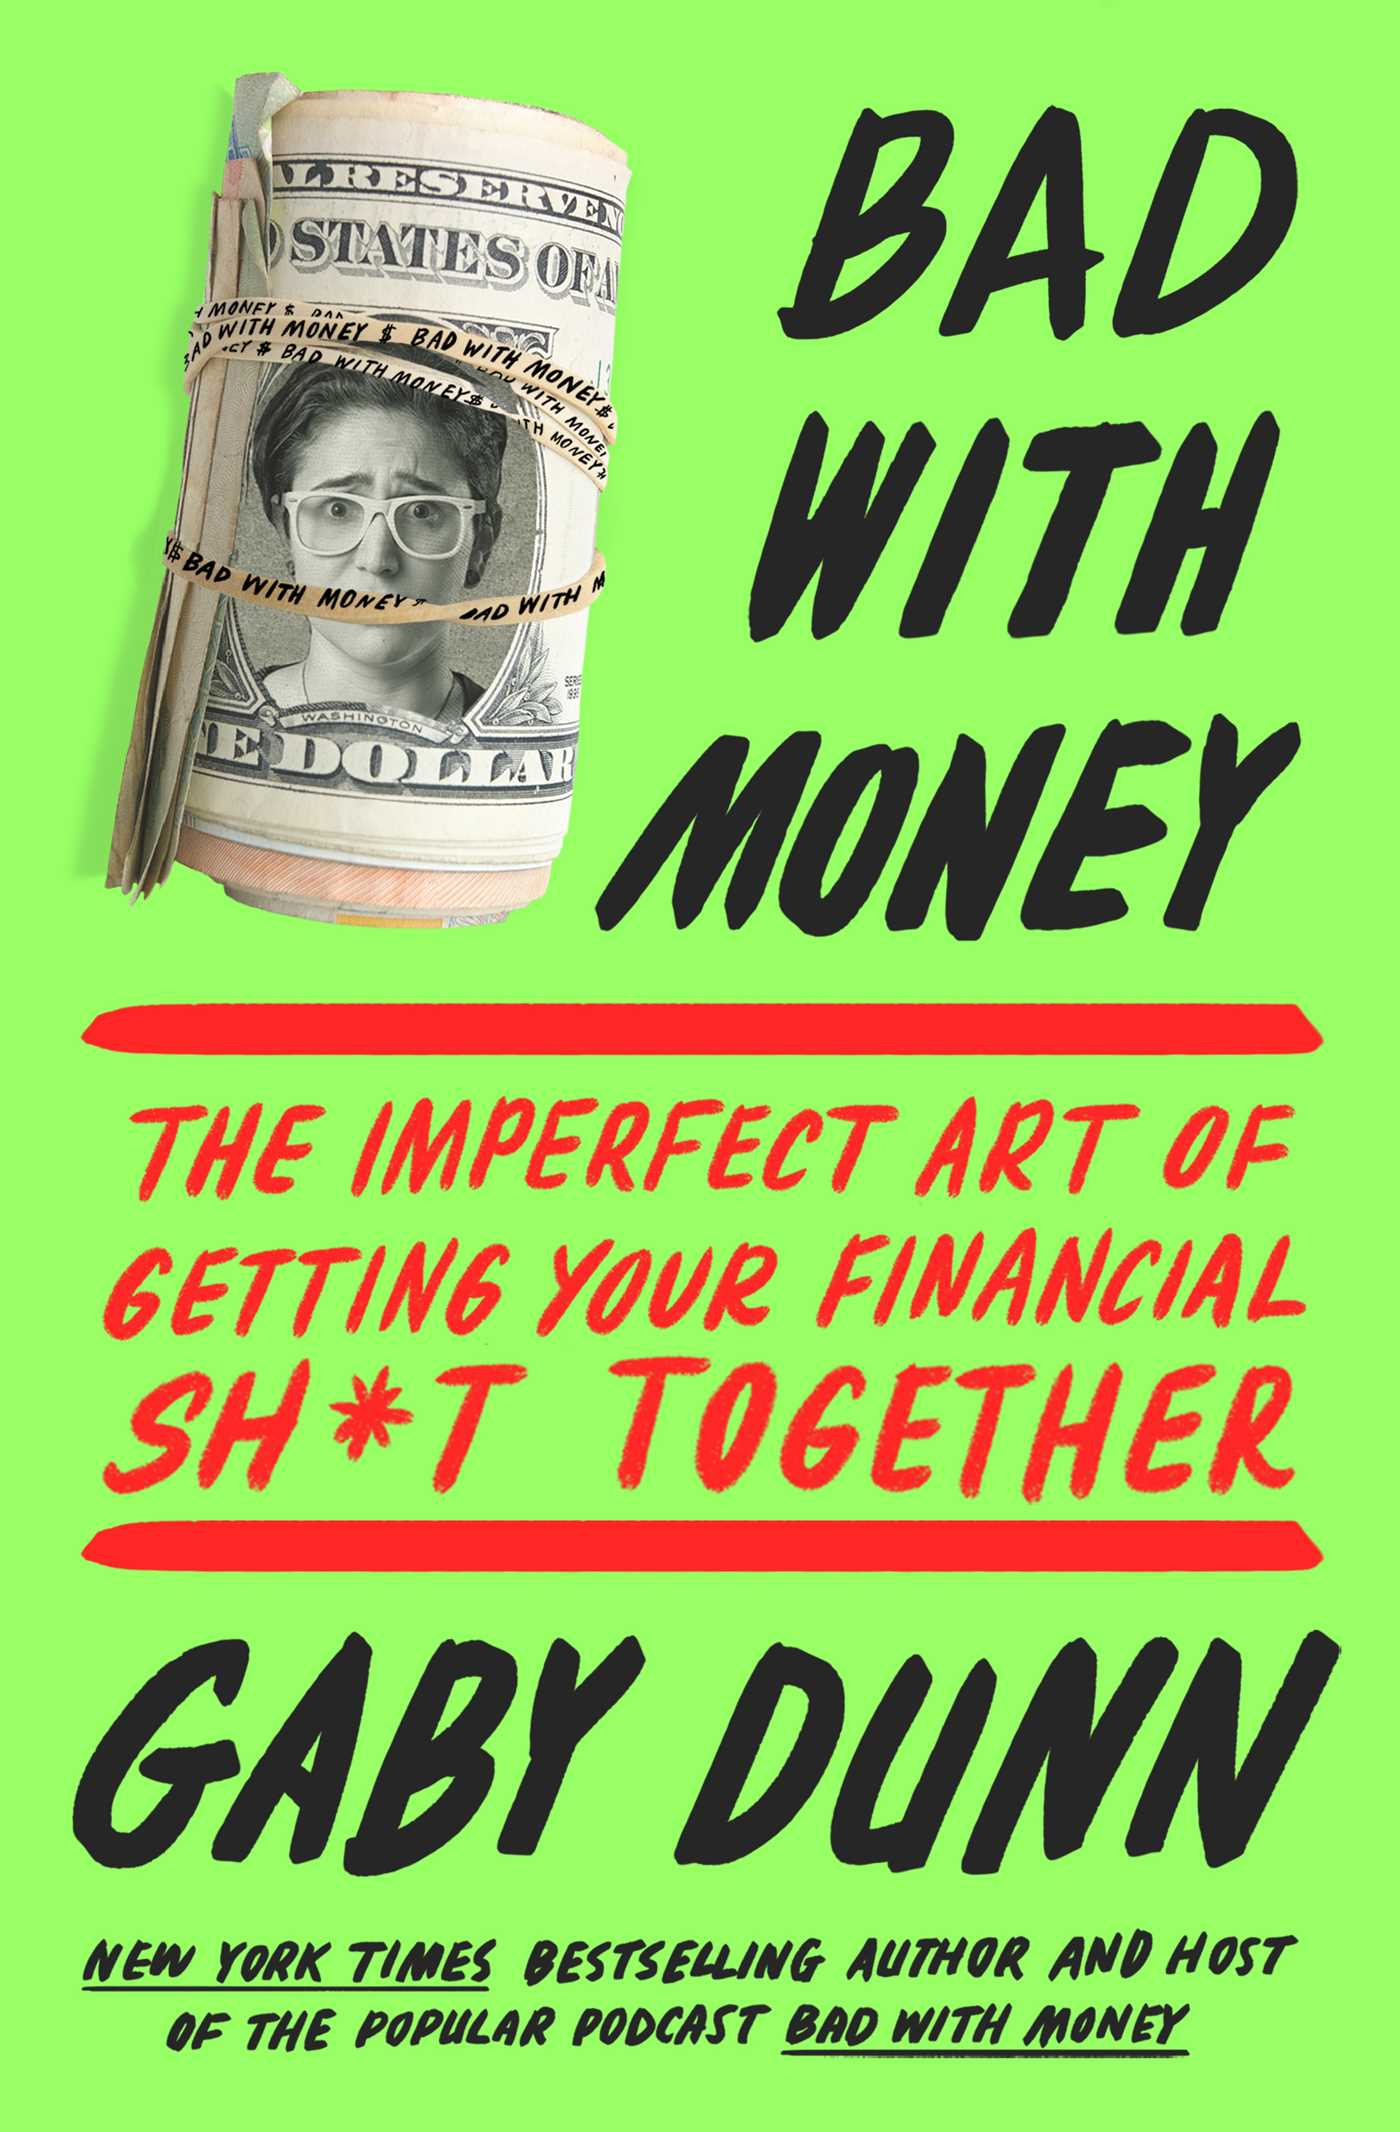 Bad with money the imperfect art of getting your financial sh*t together